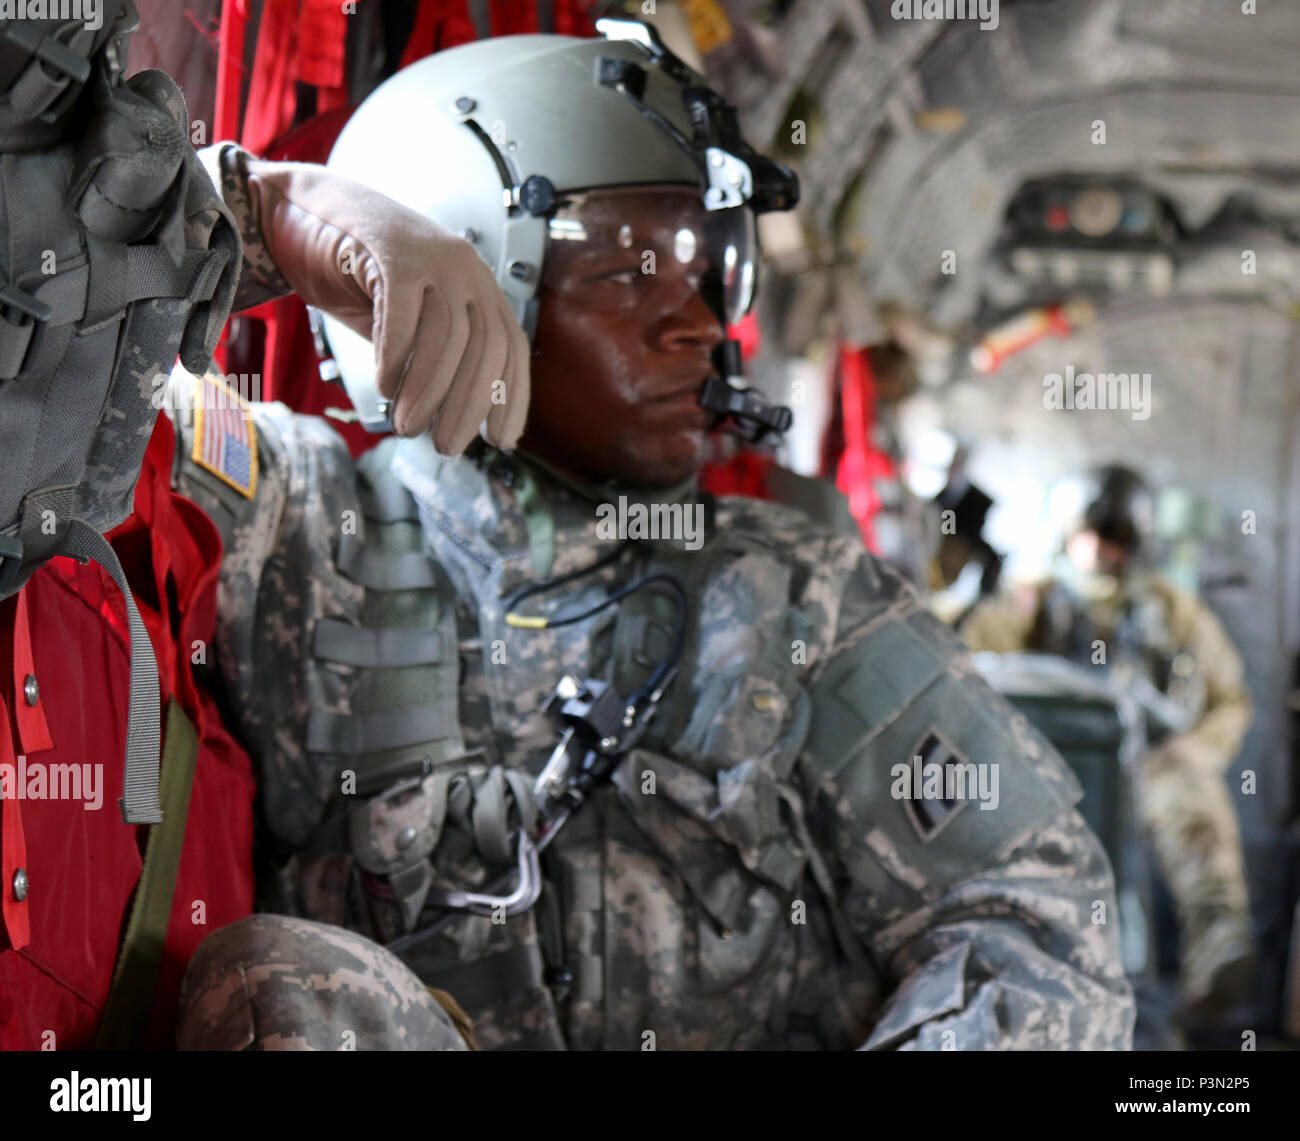 """Maryland National Guard's Sgt. DaShaun Hood, a CH-47 """"Chinook"""" crew chief with B Co, 3rd Battalion, 126th Aviation, monitors in-flight operations during a route familiarization exercise at the Army's Joint Readiness Training Center, Fort Polk, Louisiana, Wednesday, July 13, 2016.  The aviators join more than 5,000 Soldiers from other state Army National Guard units, active Army and Army Reserve troops as part of the 27th Infantry Brigade Combat Team task force.  The Soldiers will hone their skills and practice integrating combat operations ranging from infantry troops engaging in close combat  Stock Photo"""